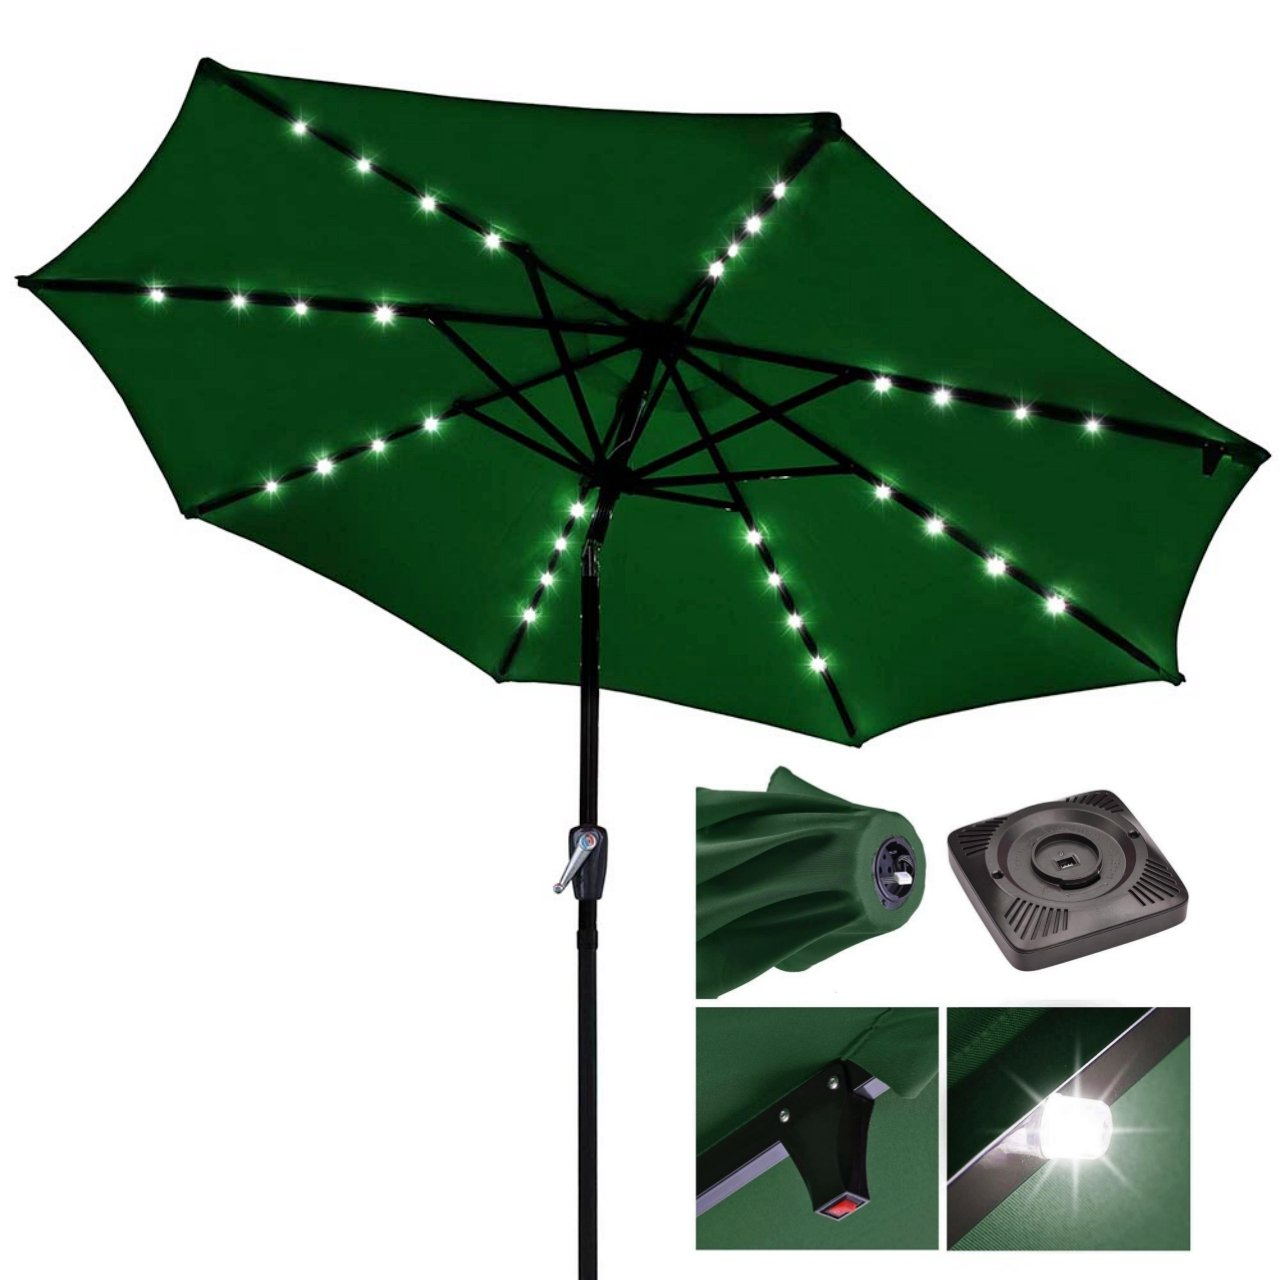 9ft Outdoor Patio Solar Power LED Aluminium Umbrella Sunshade UV Blocking Tilt Hand-Crank - Green #914